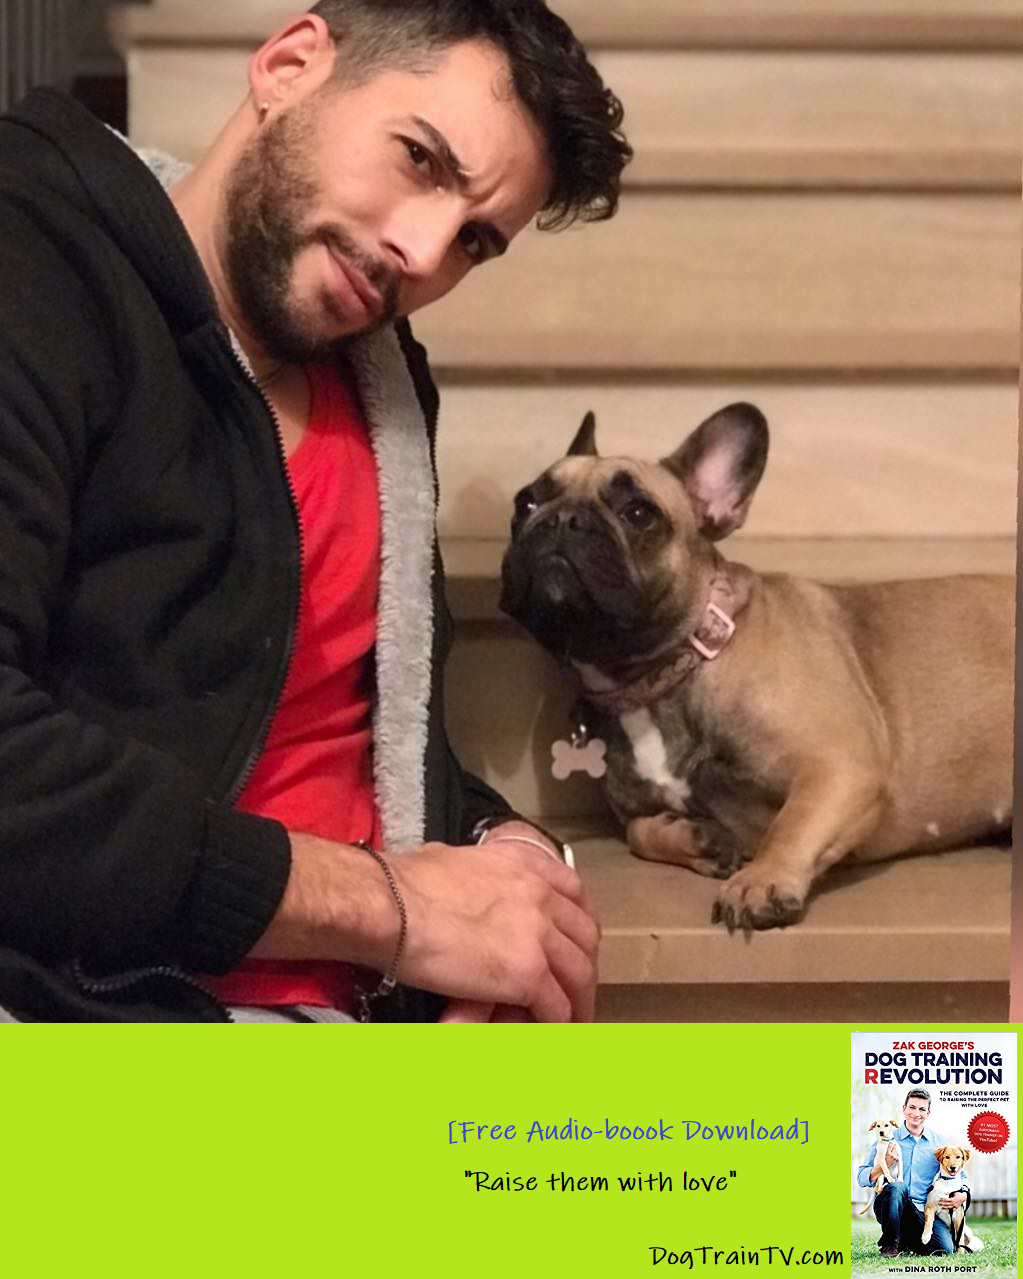 This Is Penelope After Our First Training Session Dog Frenchy Frenchbulldog Sable Puppy Animal Pet Dogtraining Dog Training Dogs Service Dog Training